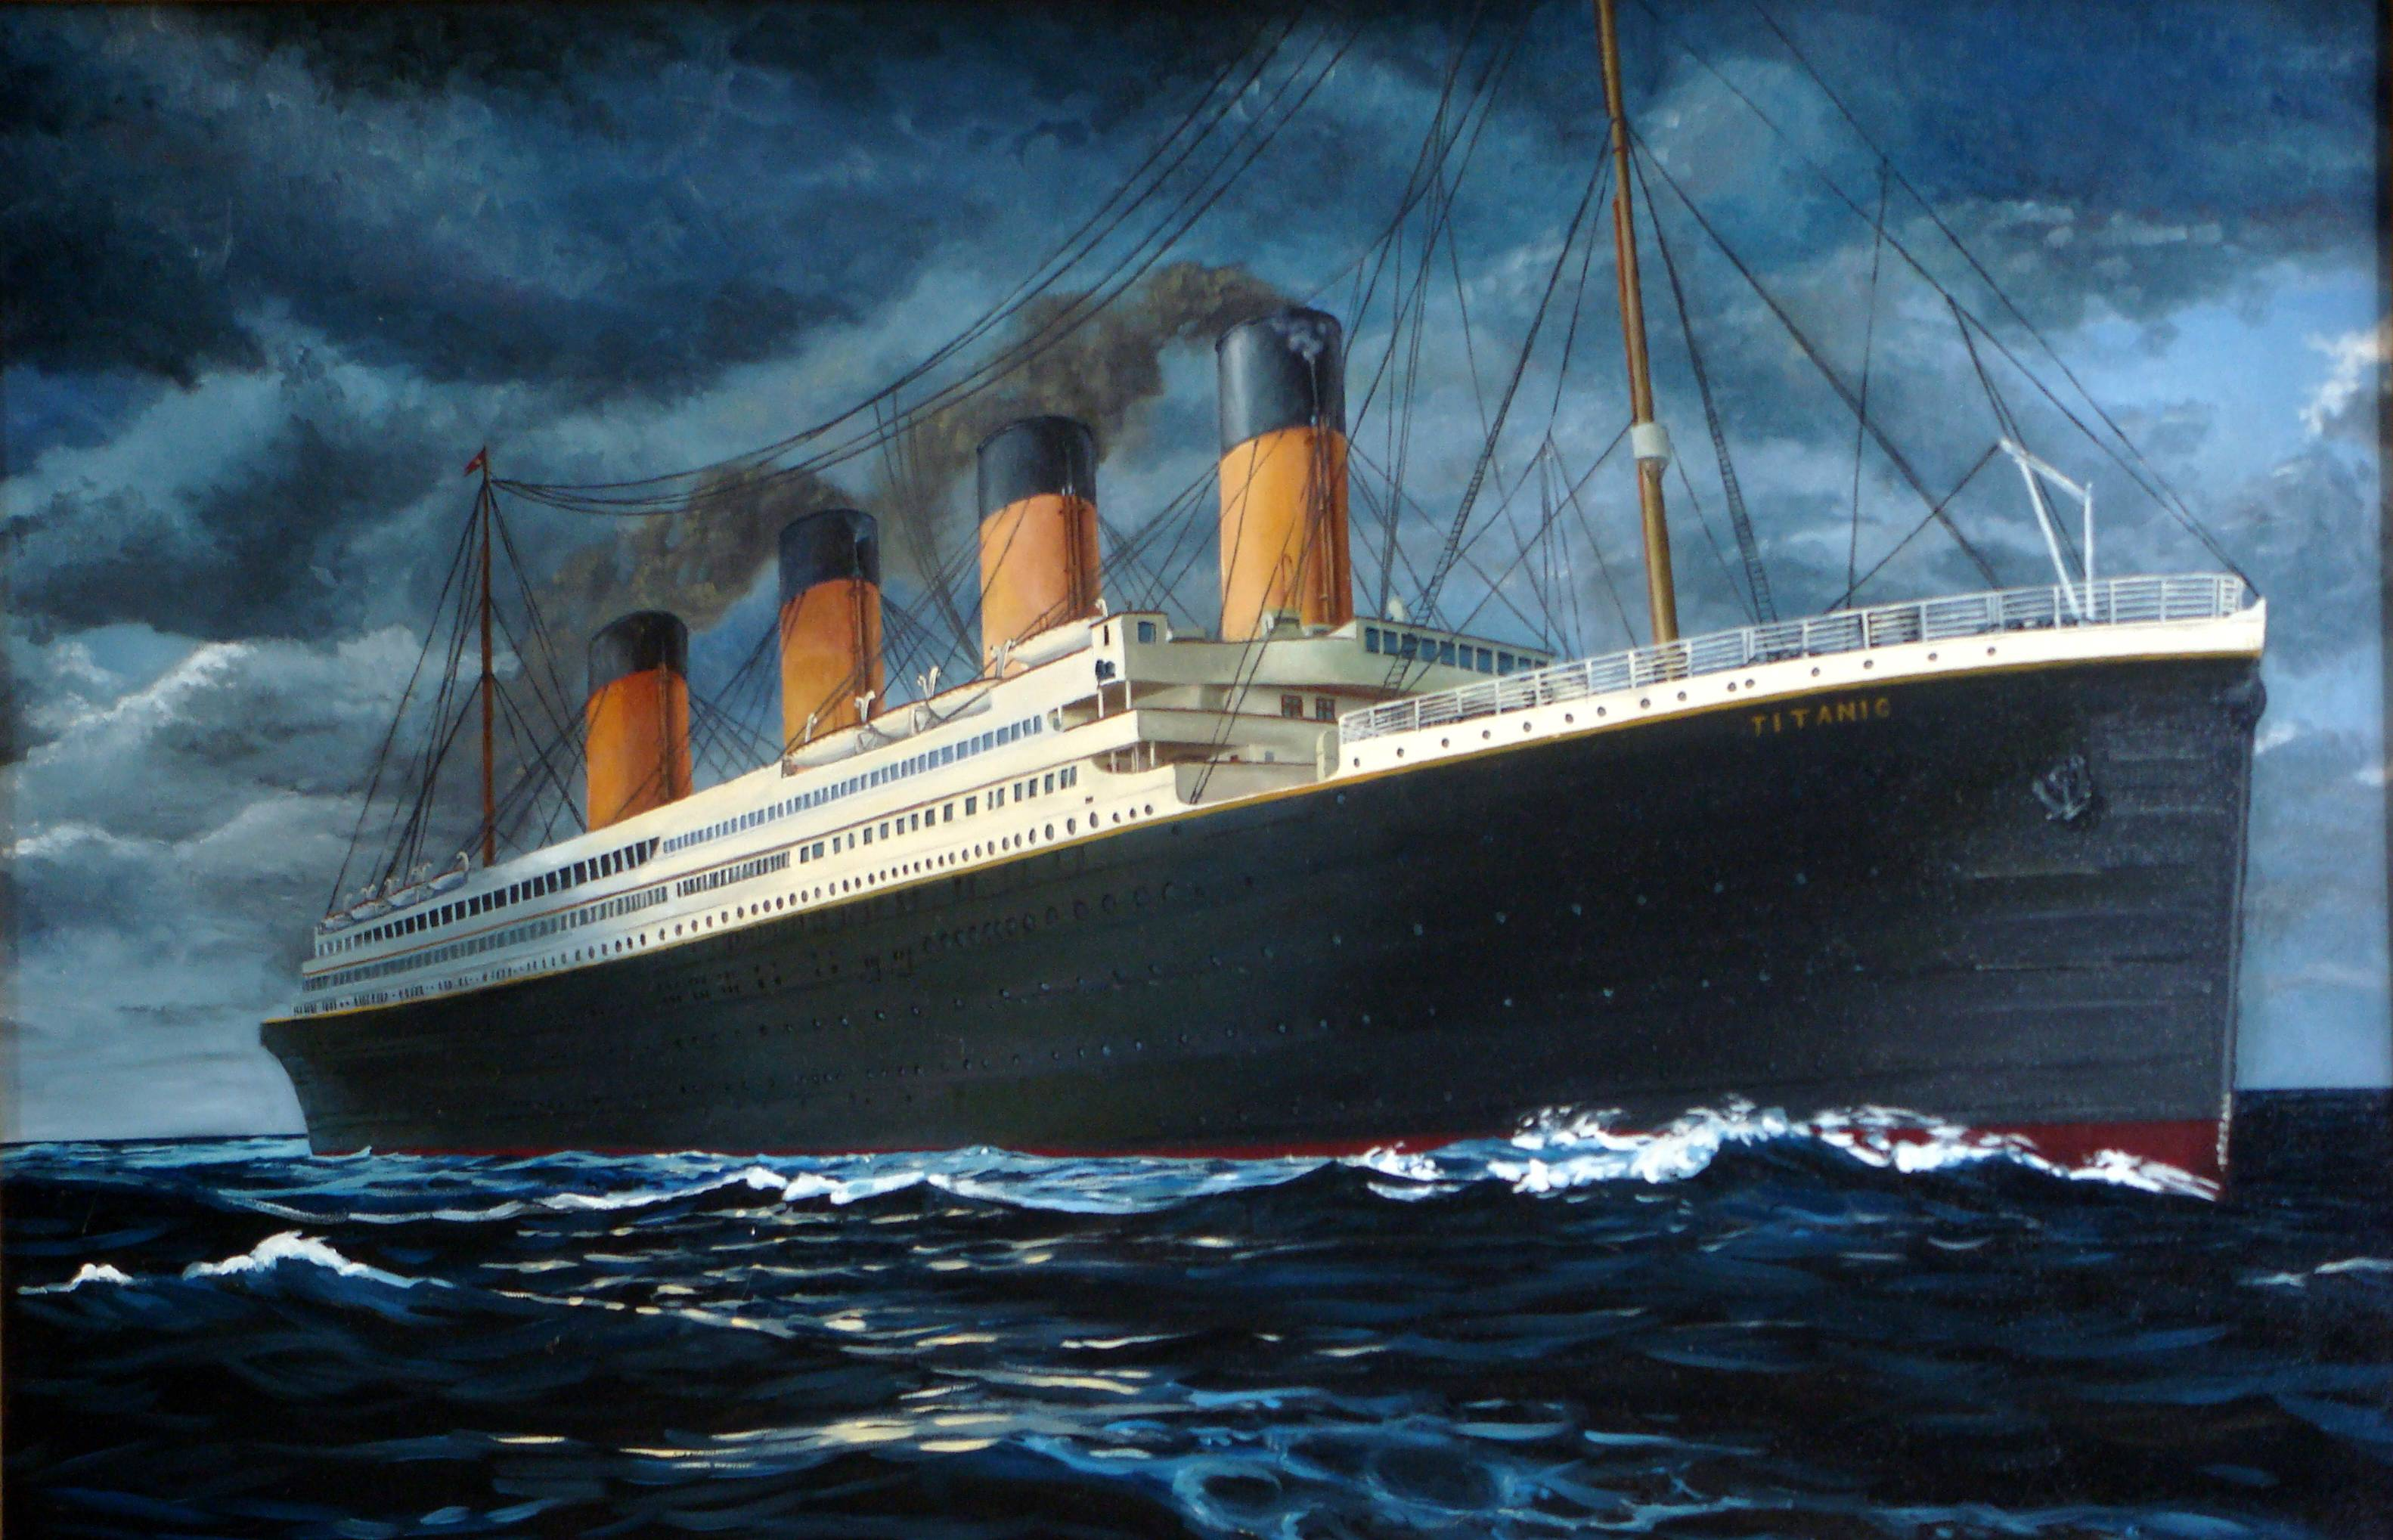 Titanic Movies Wallpaper Backgrounds